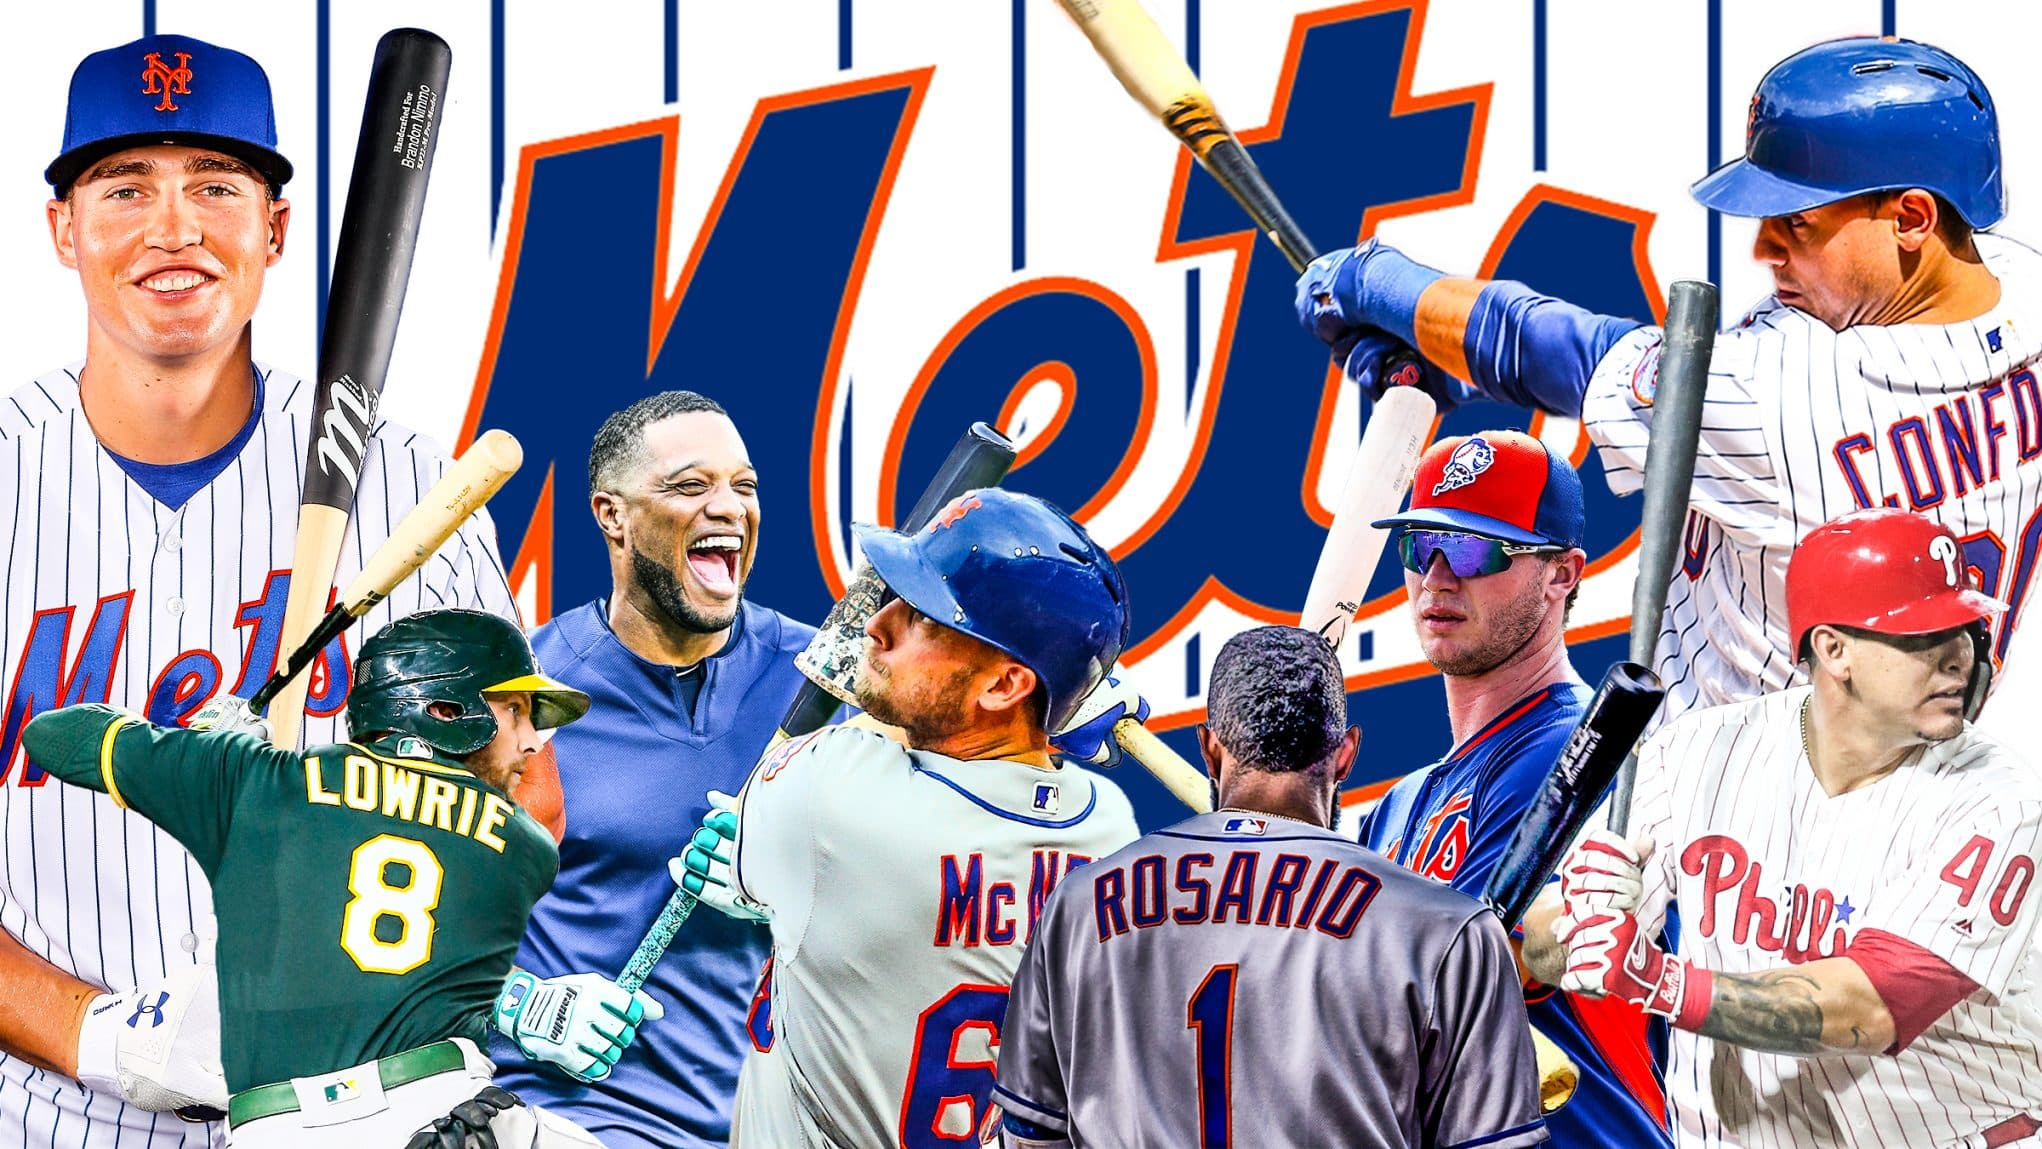 New York Mets 2019 lineup: Breaking down the RHP, LHP possibilities